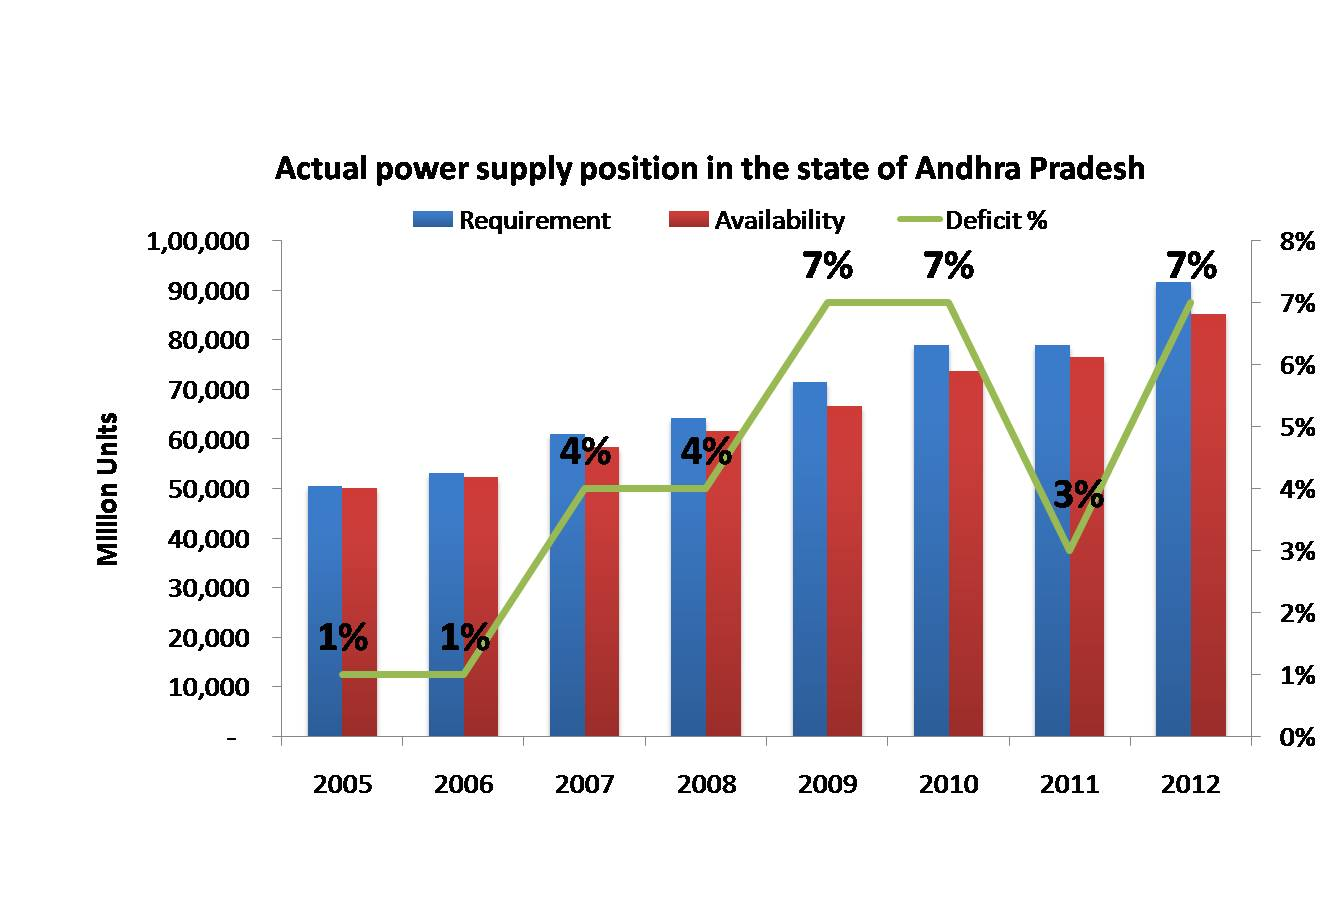 Actual power supply position in the state of Andhra Pradesh